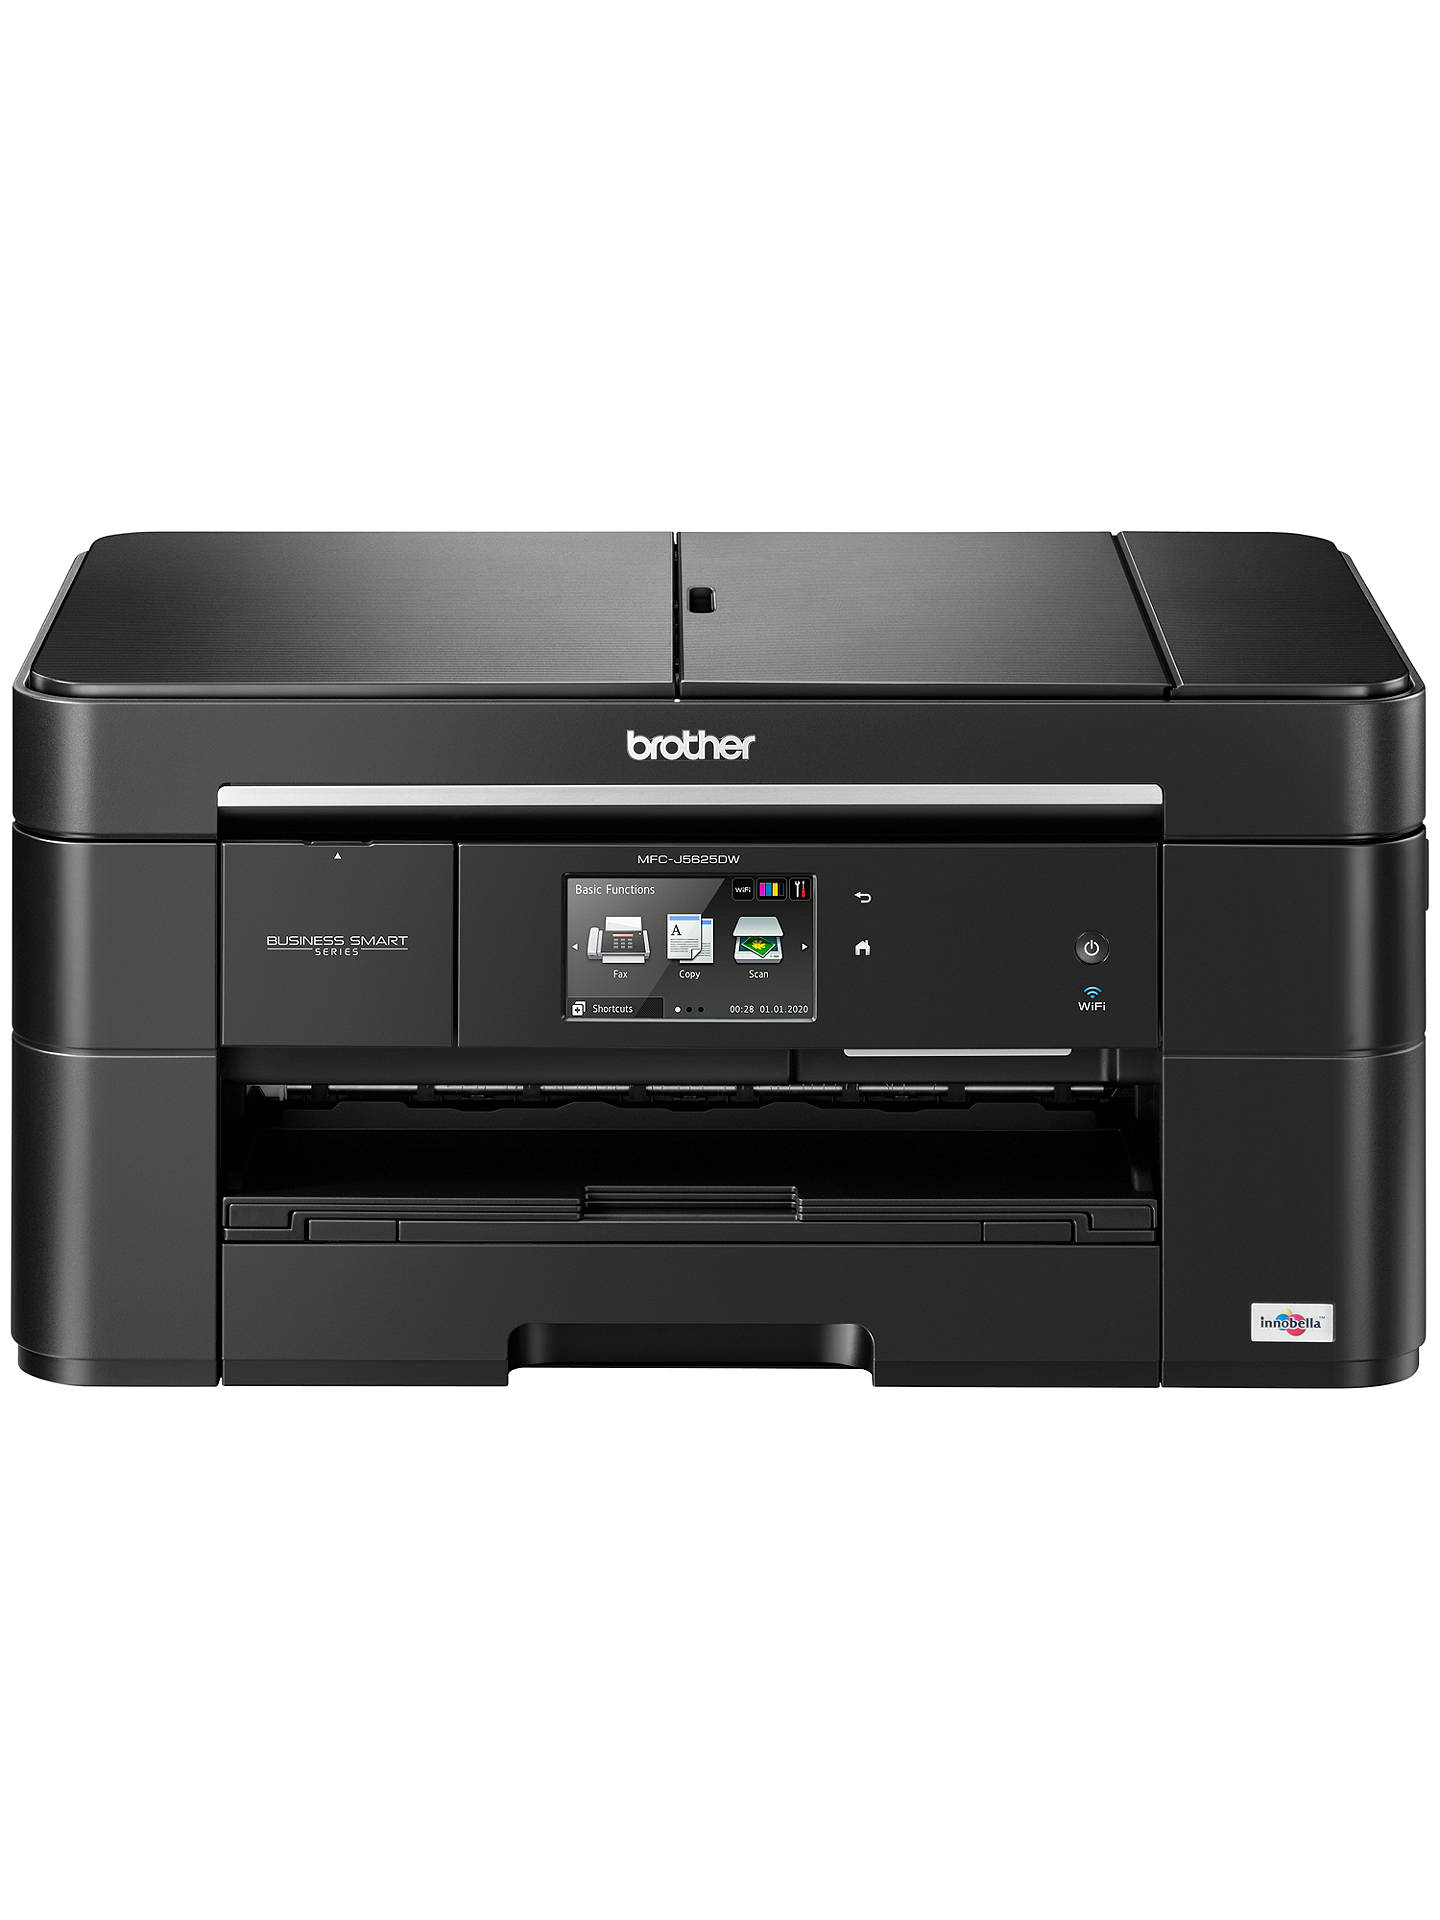 Brother MFC-J5625DW Wireless All-in-One A3 Colour Inkjet Printer & Fax  Machine